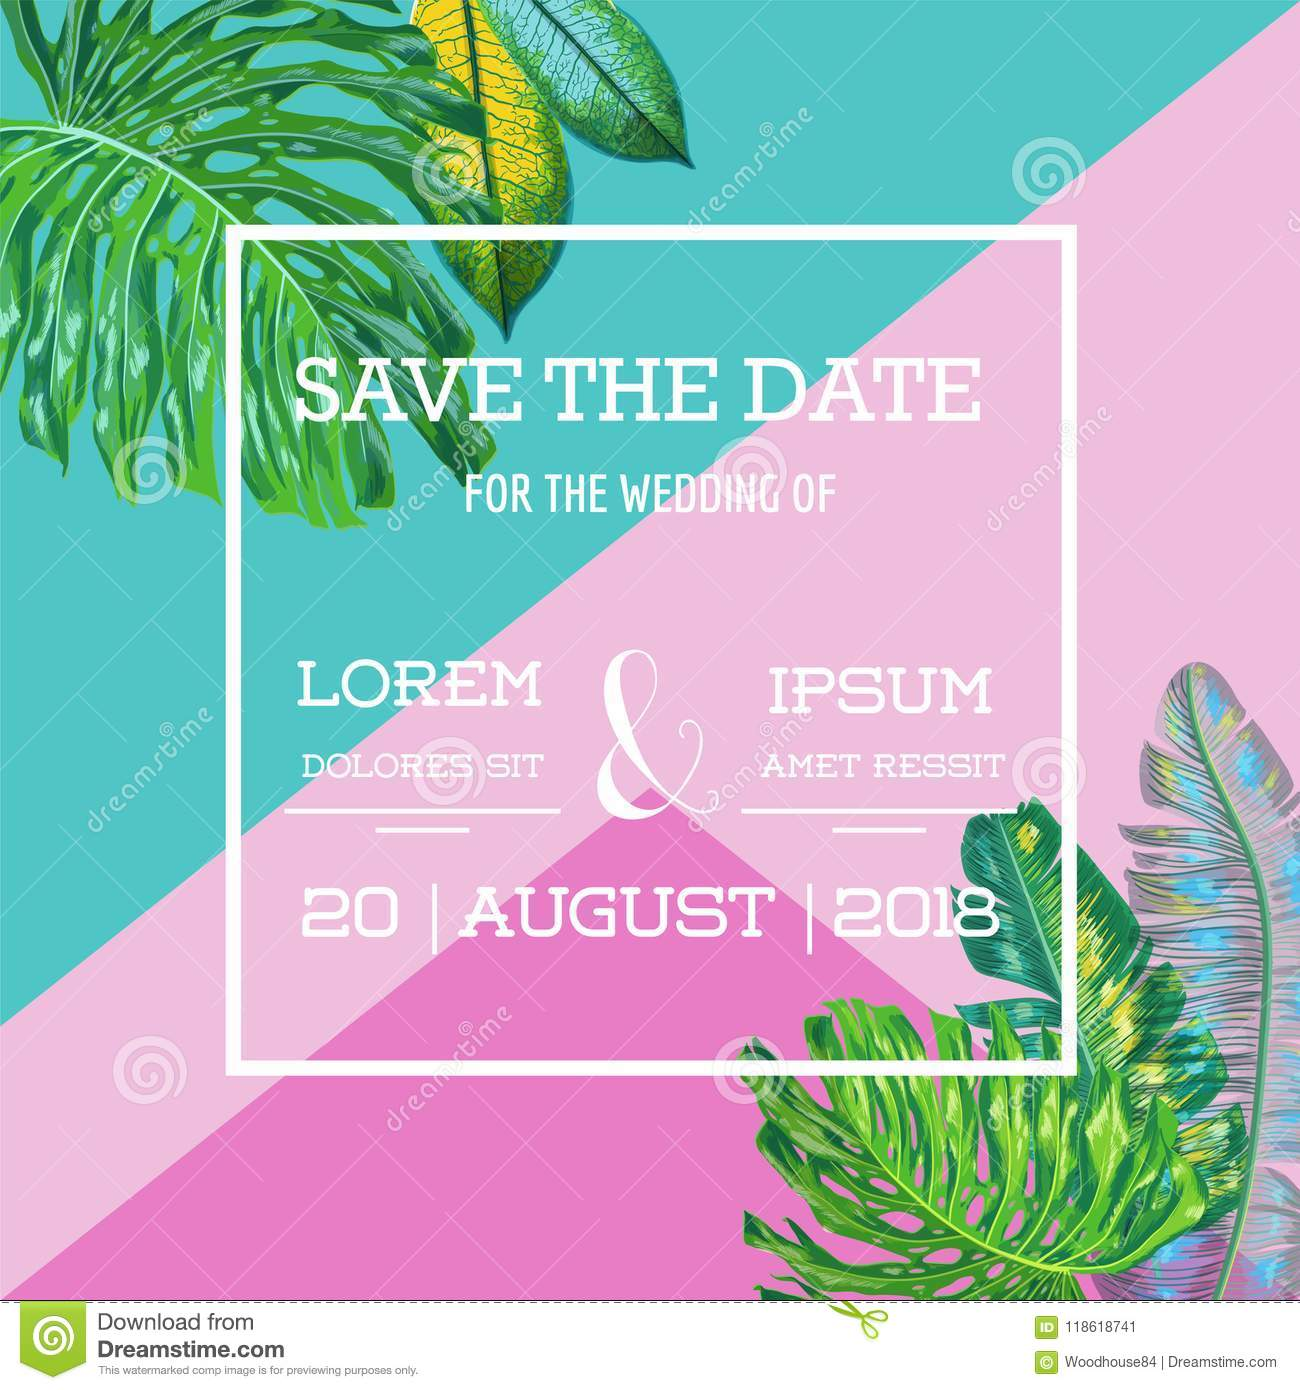 wedding invitation template with palm leaves tropical save the date